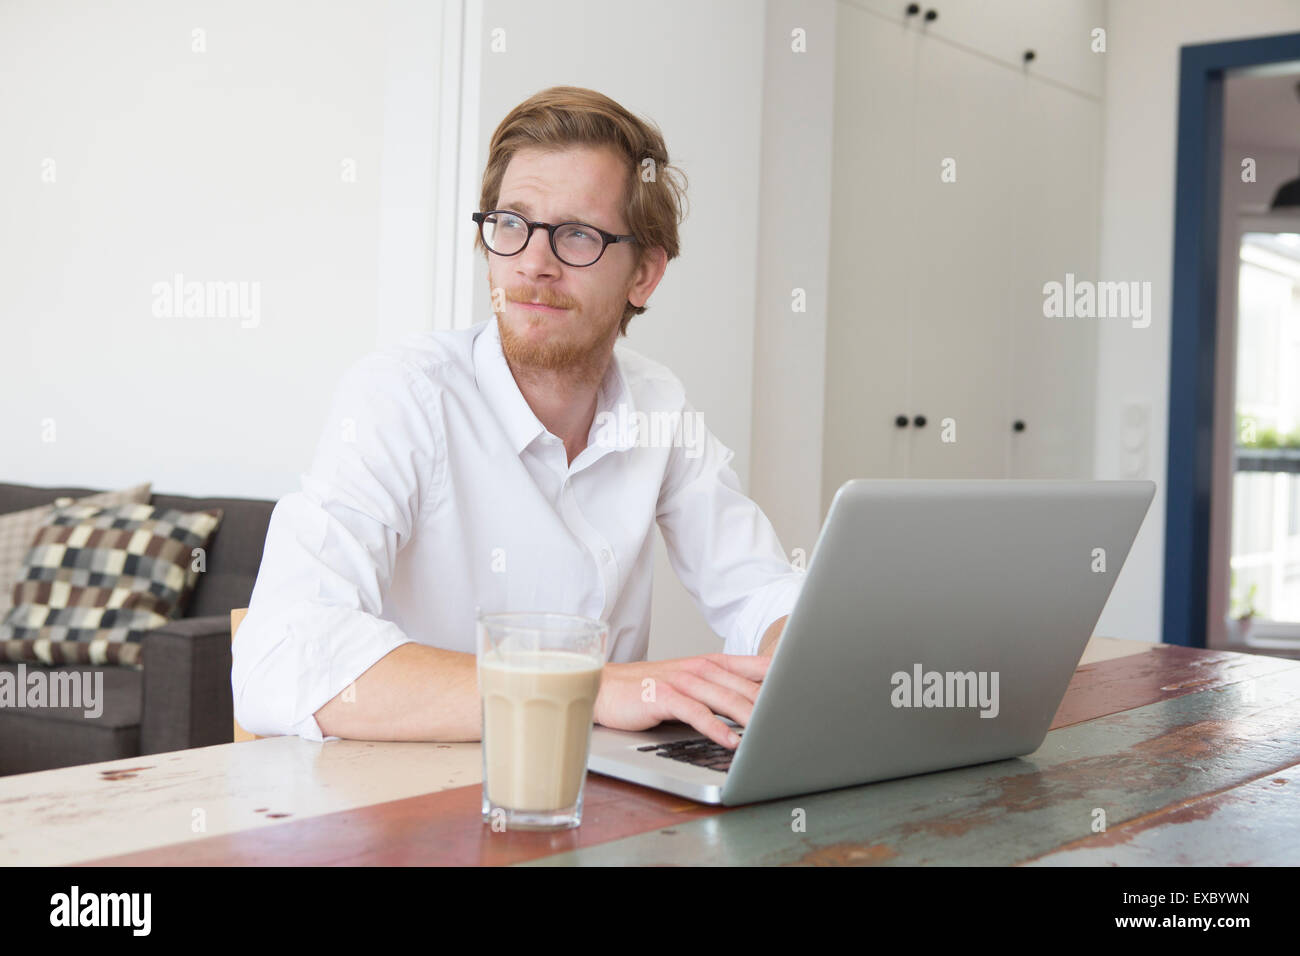 red-haired young man sitting at table with his laptop and looking thoughtfully - Stock Image